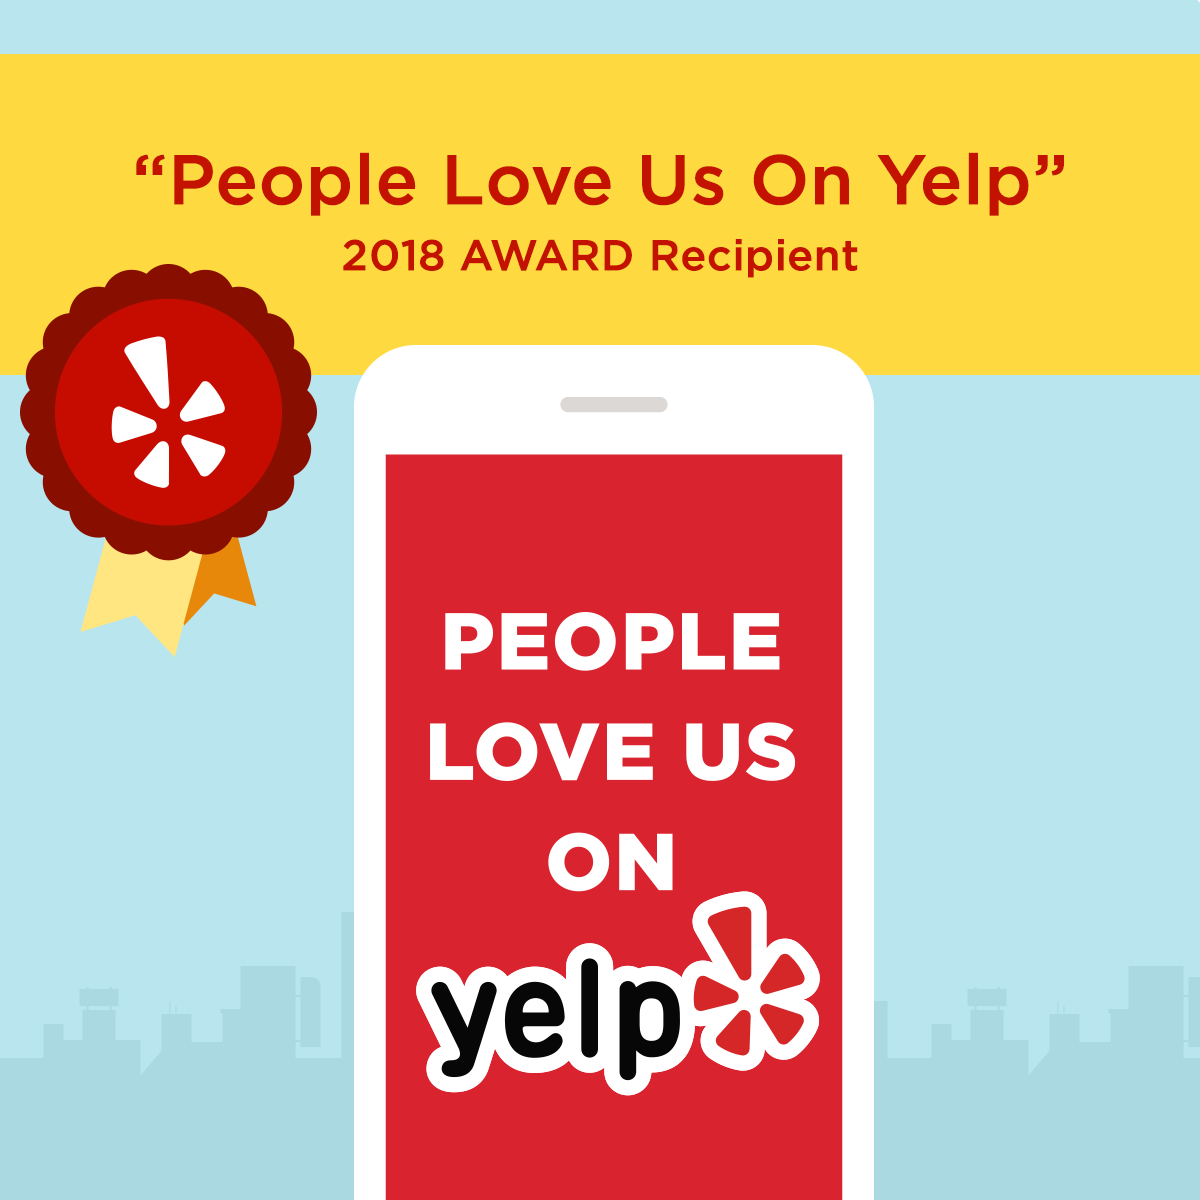 Yelp_FBShare_1200x1200.png